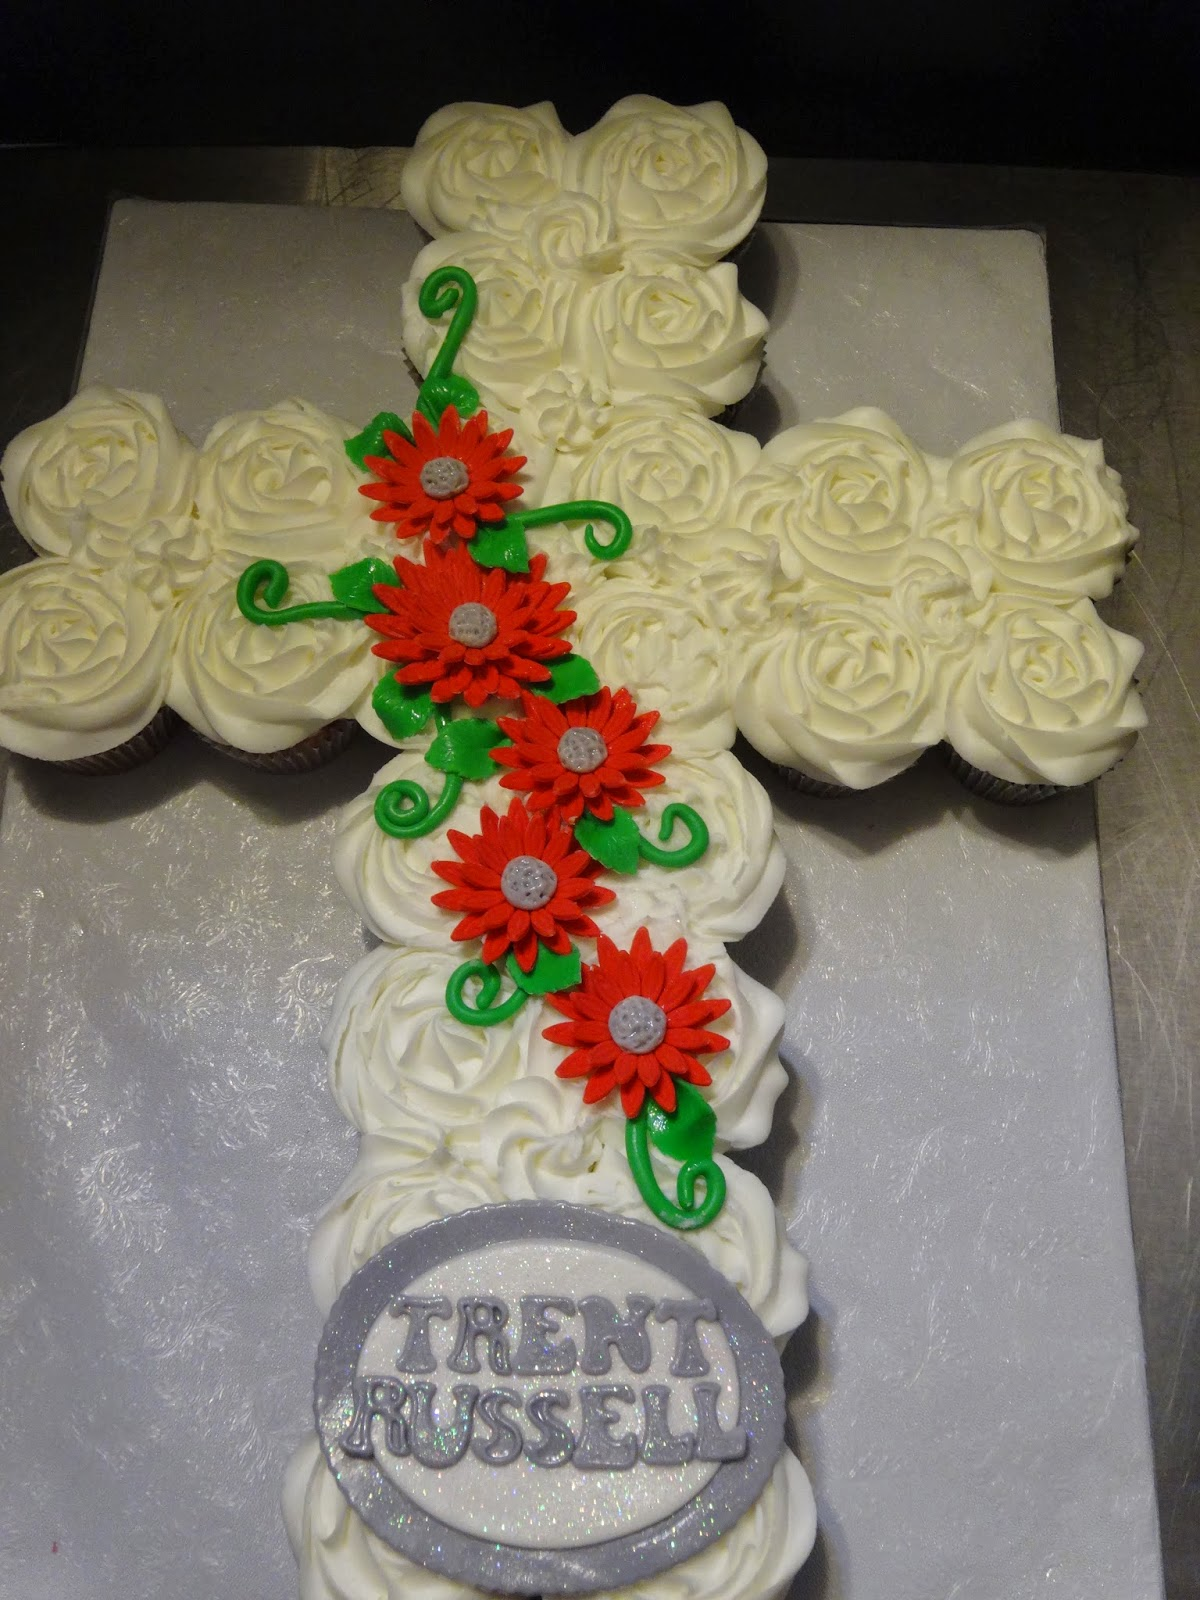 Cakes by Paula Confirmation Cross made of cupcakes and matching